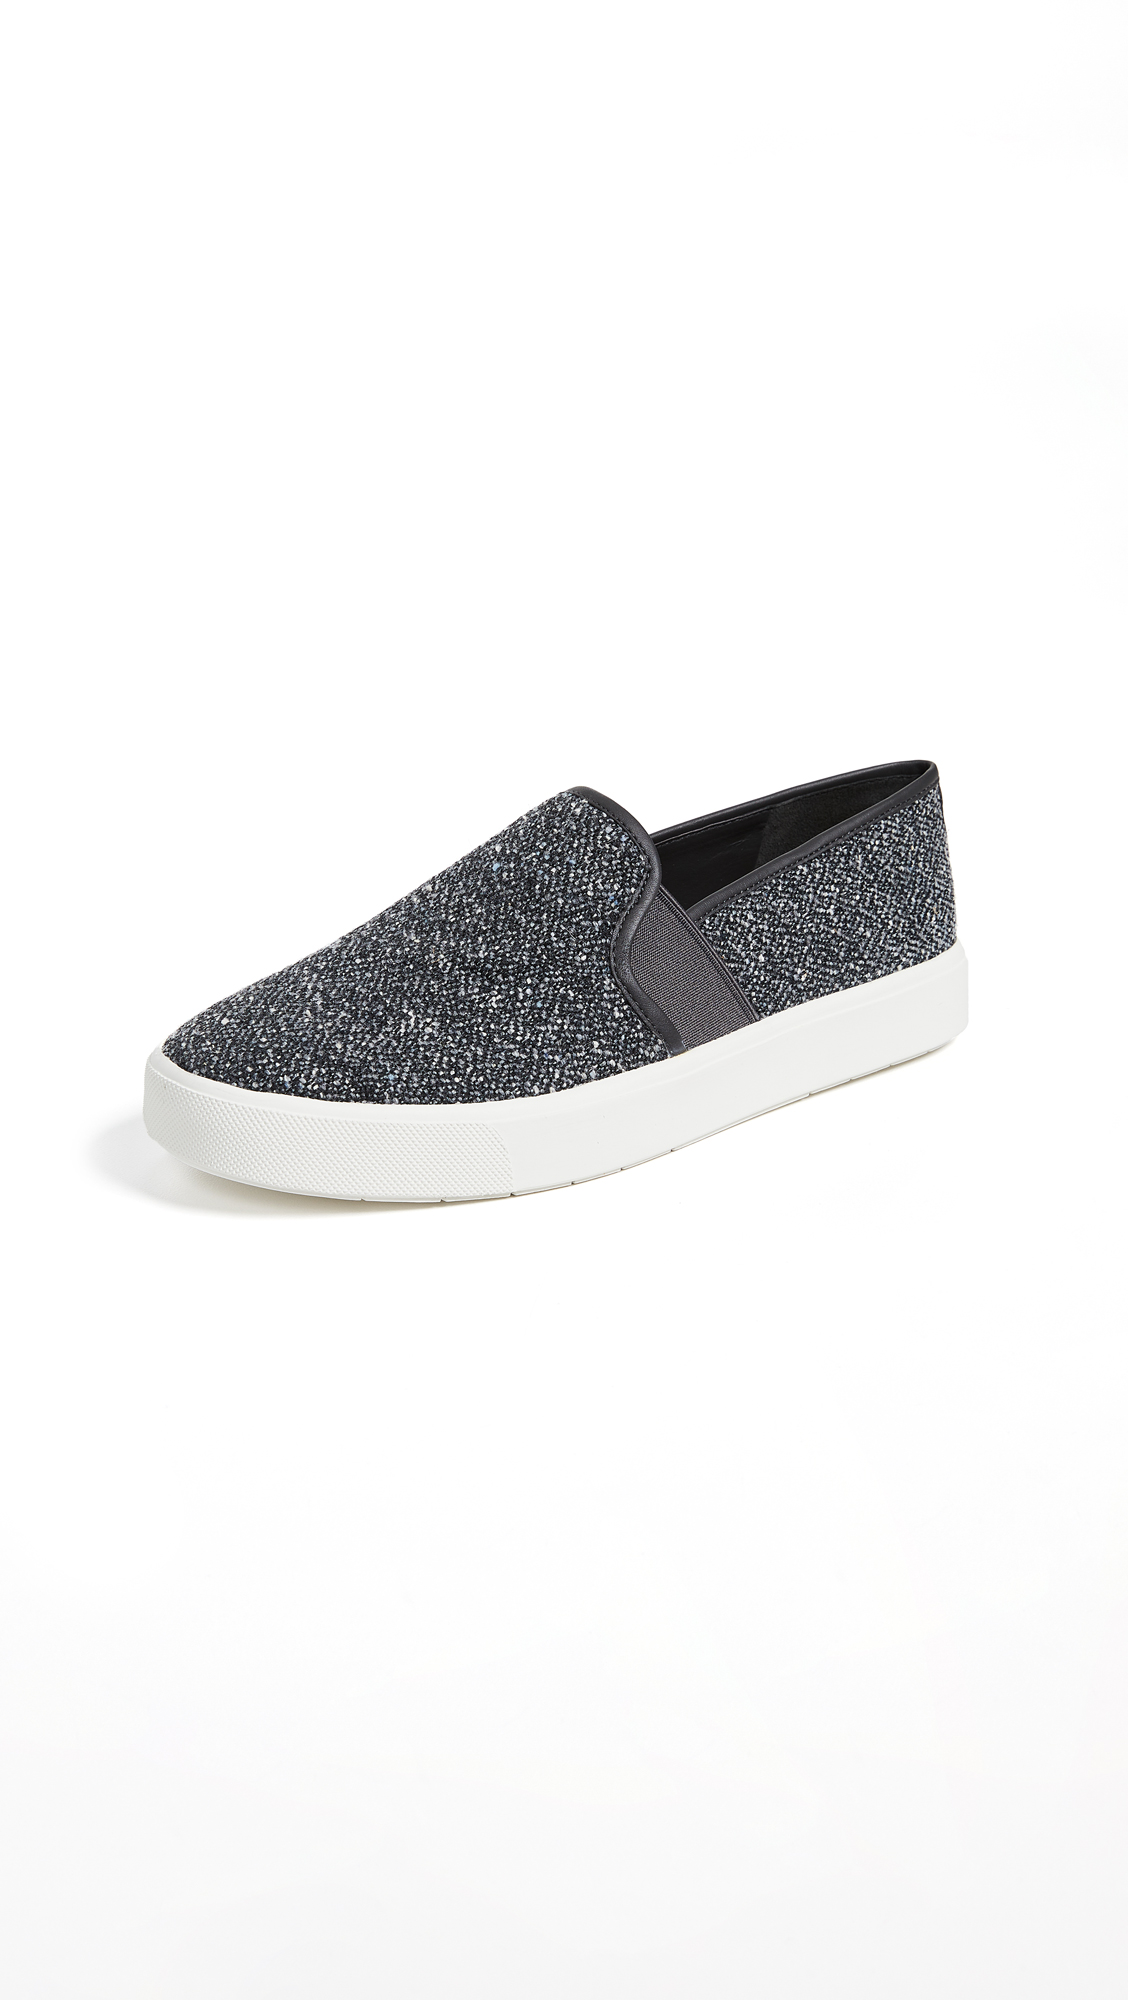 Vince Blair Slip On Sneakers - Grey